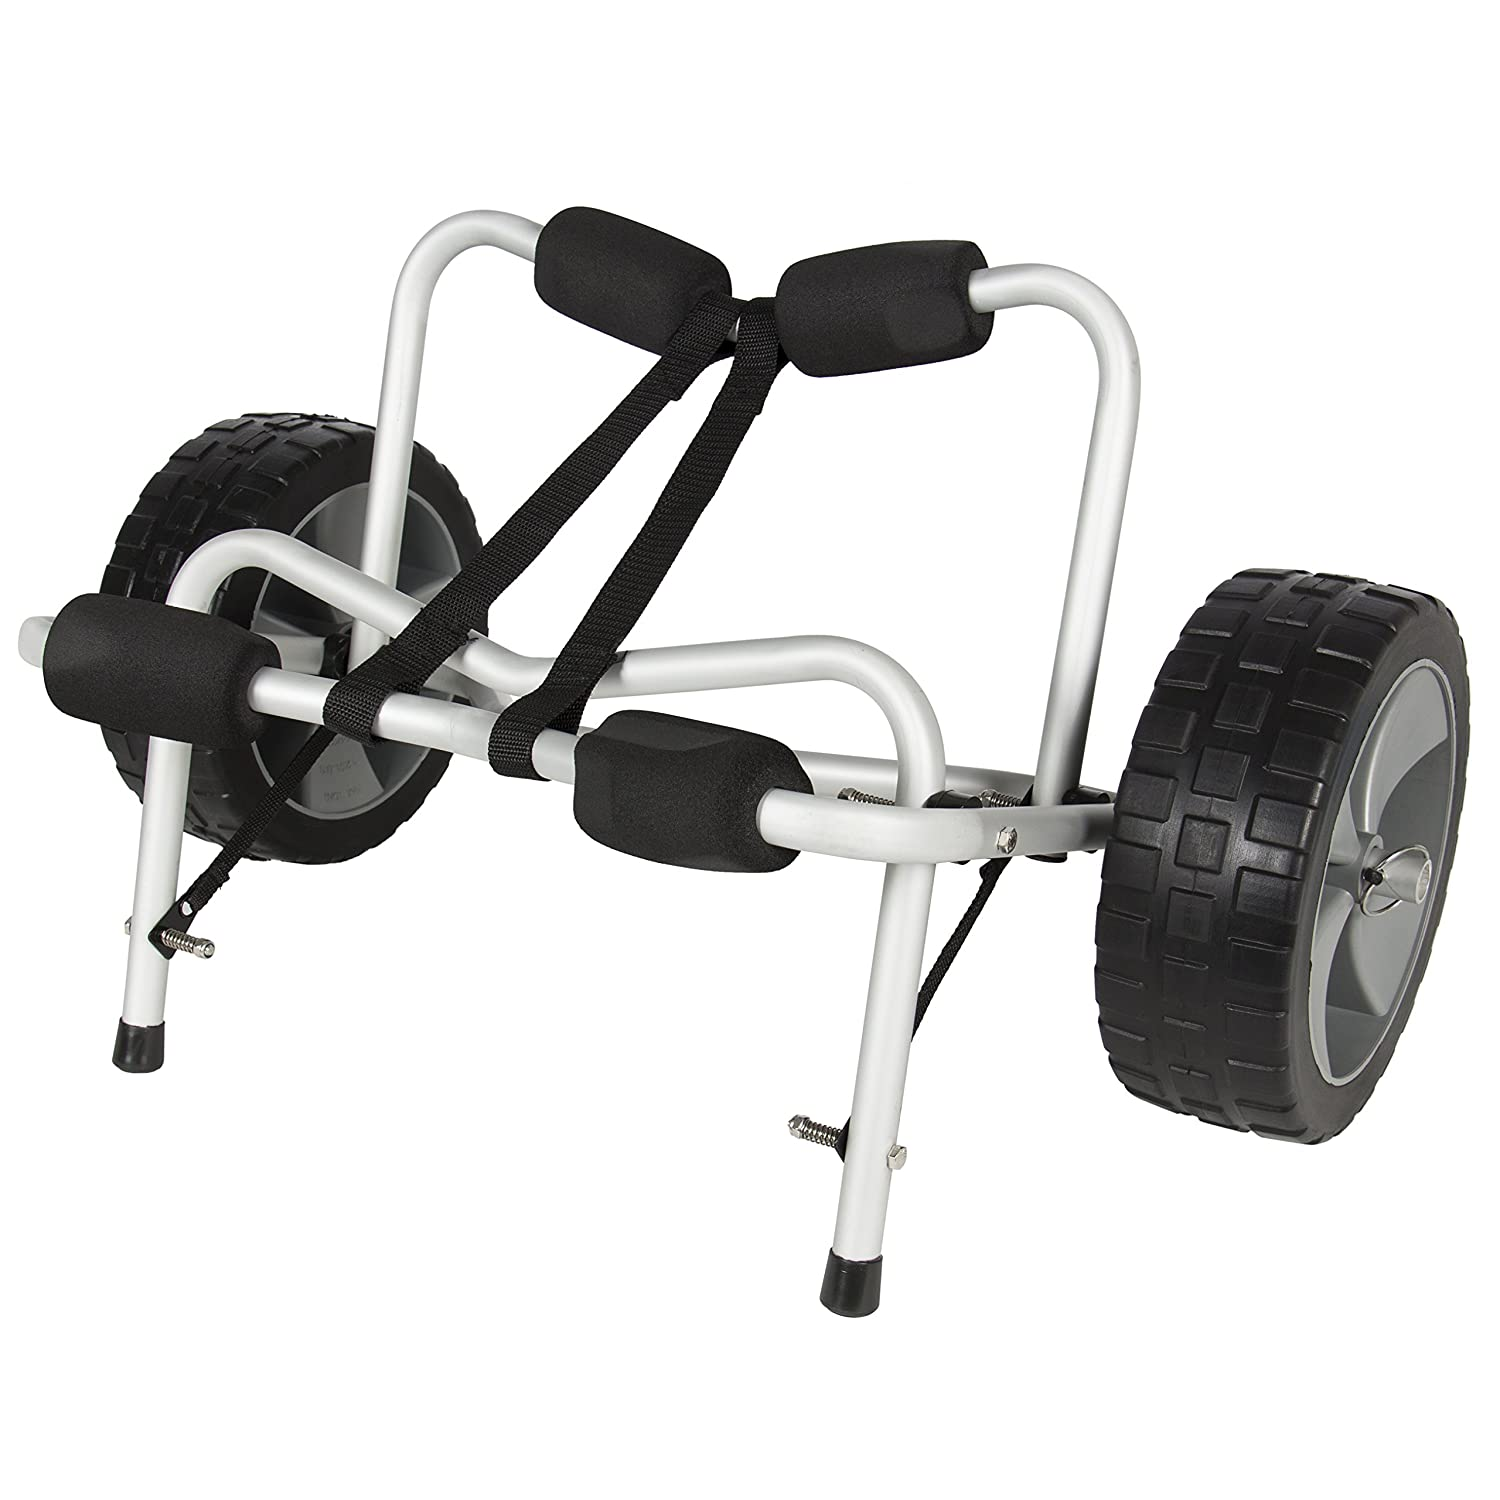 Best Choice Products SKY1251 Boat Kayak Canoe Carrier Dolly Trailer Tote Trolley Transport Cart